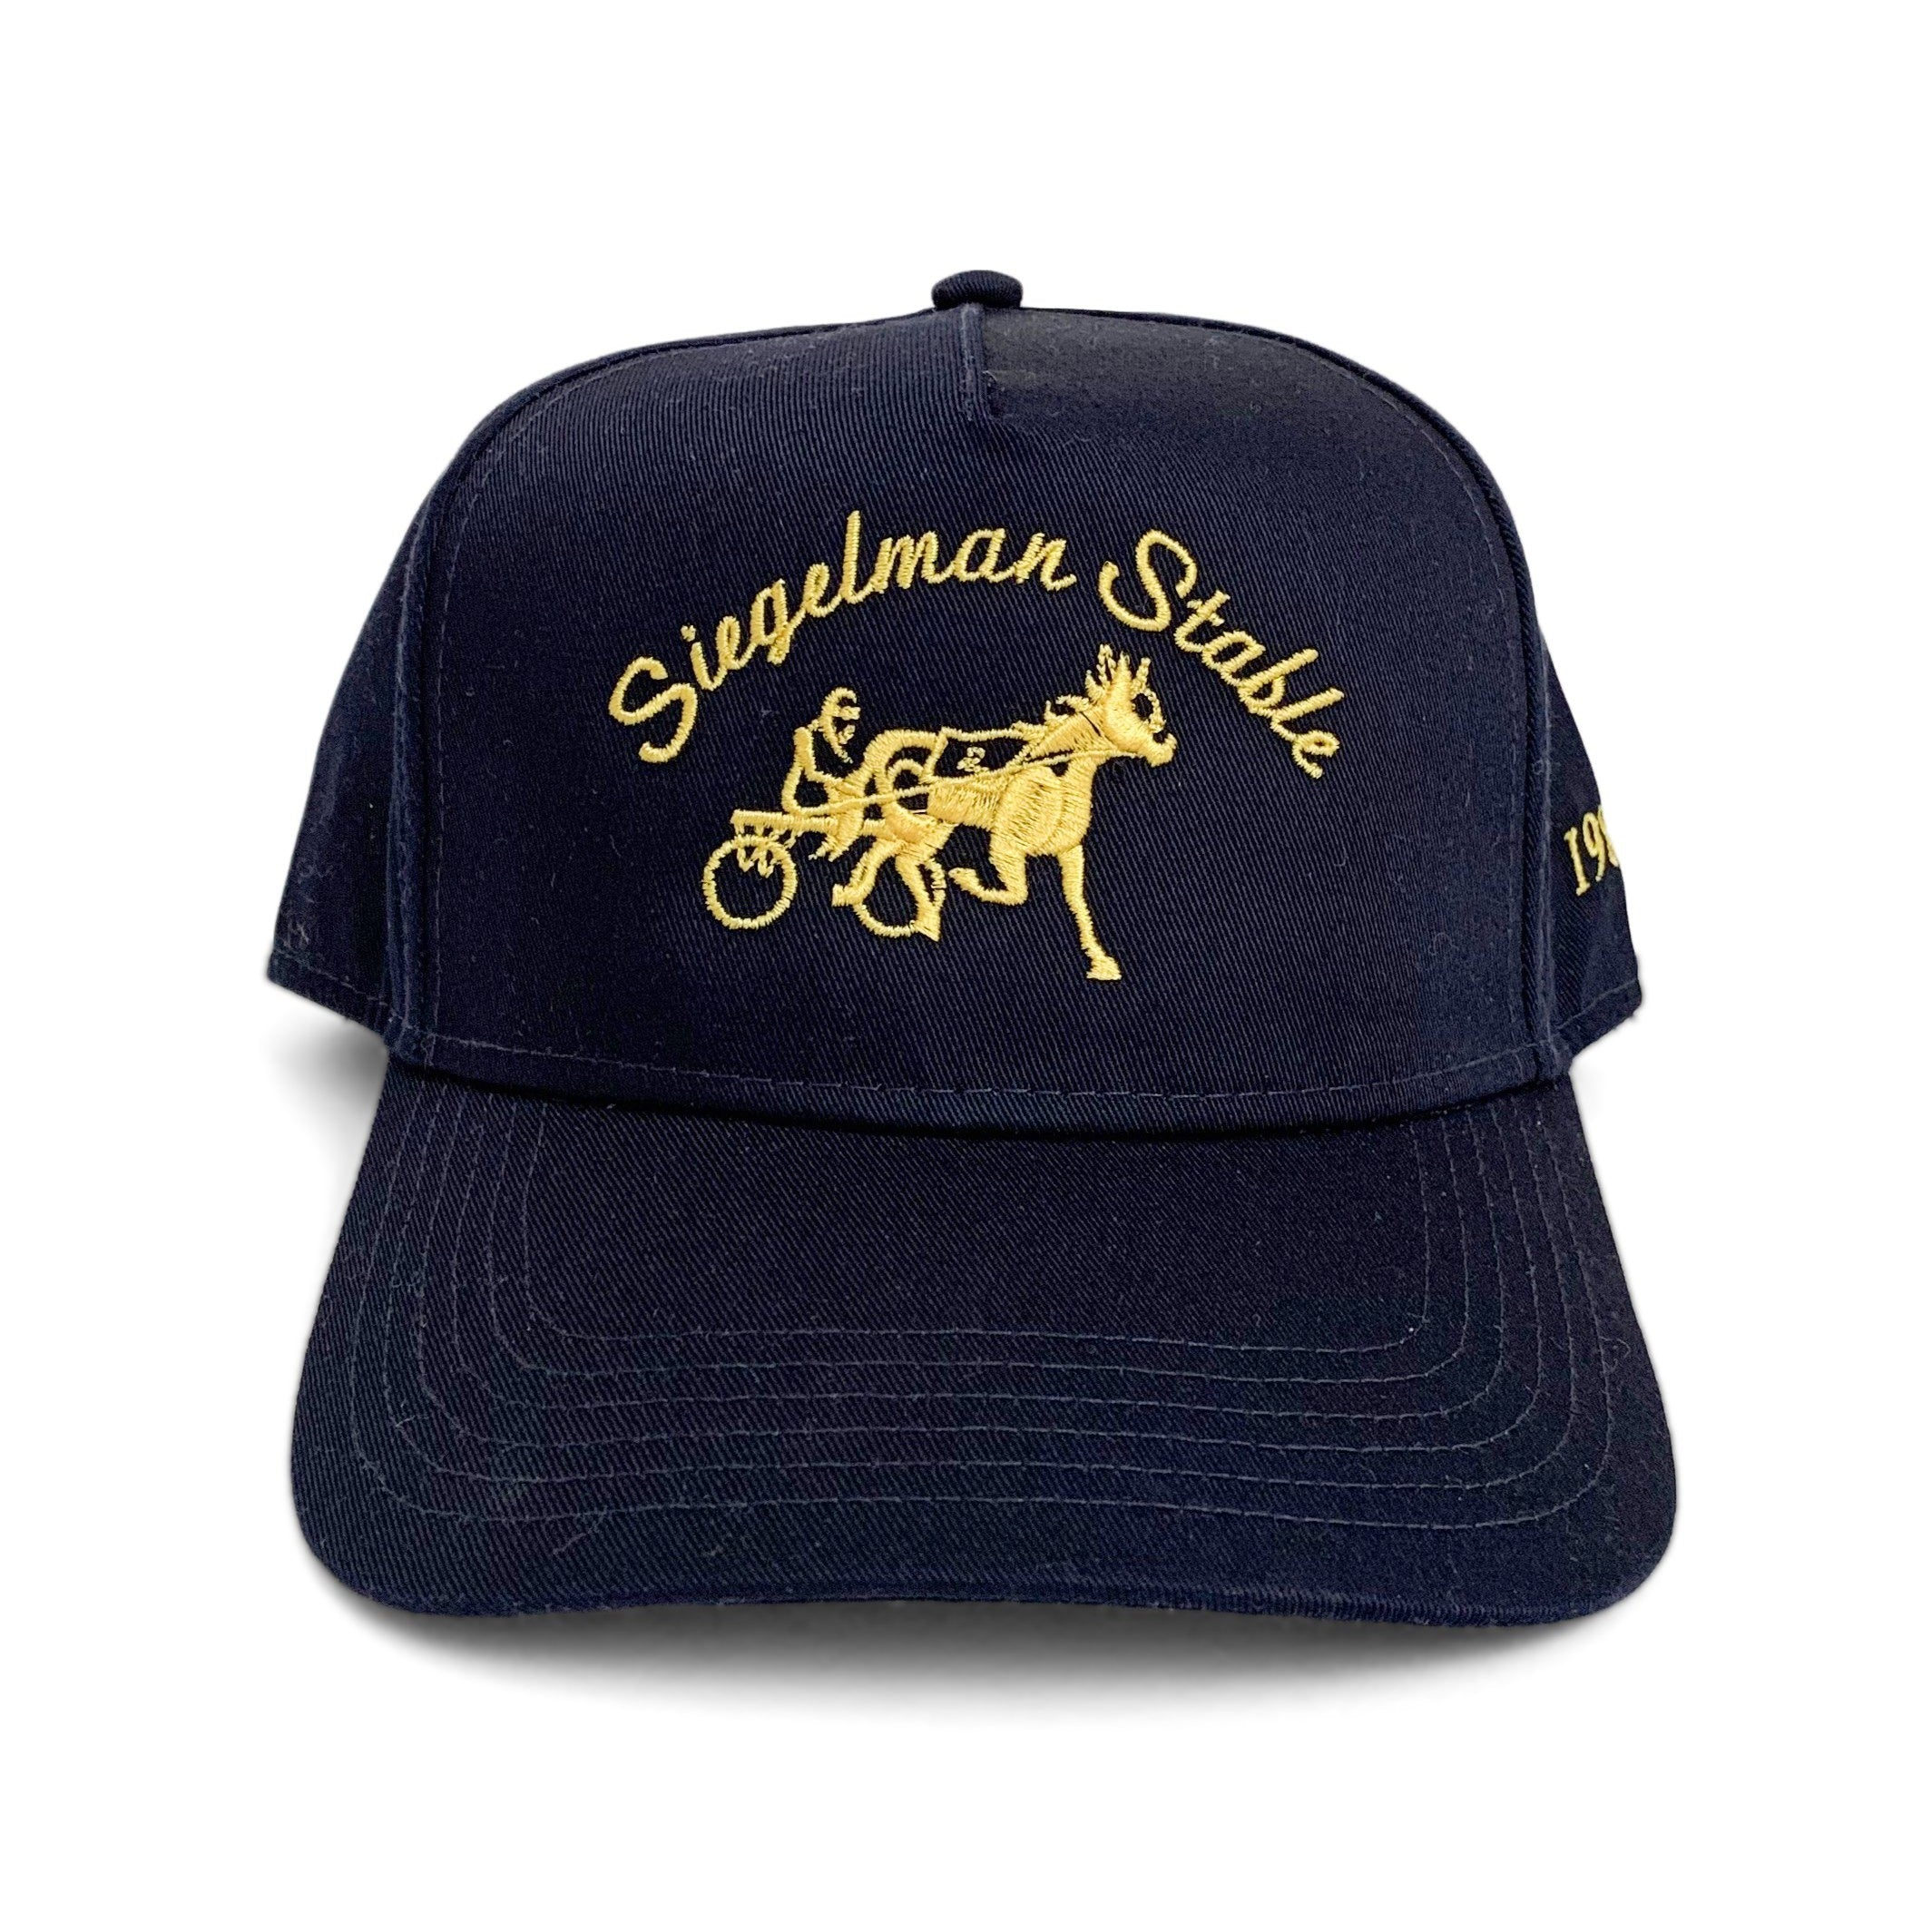 Siegelman Stable Hat